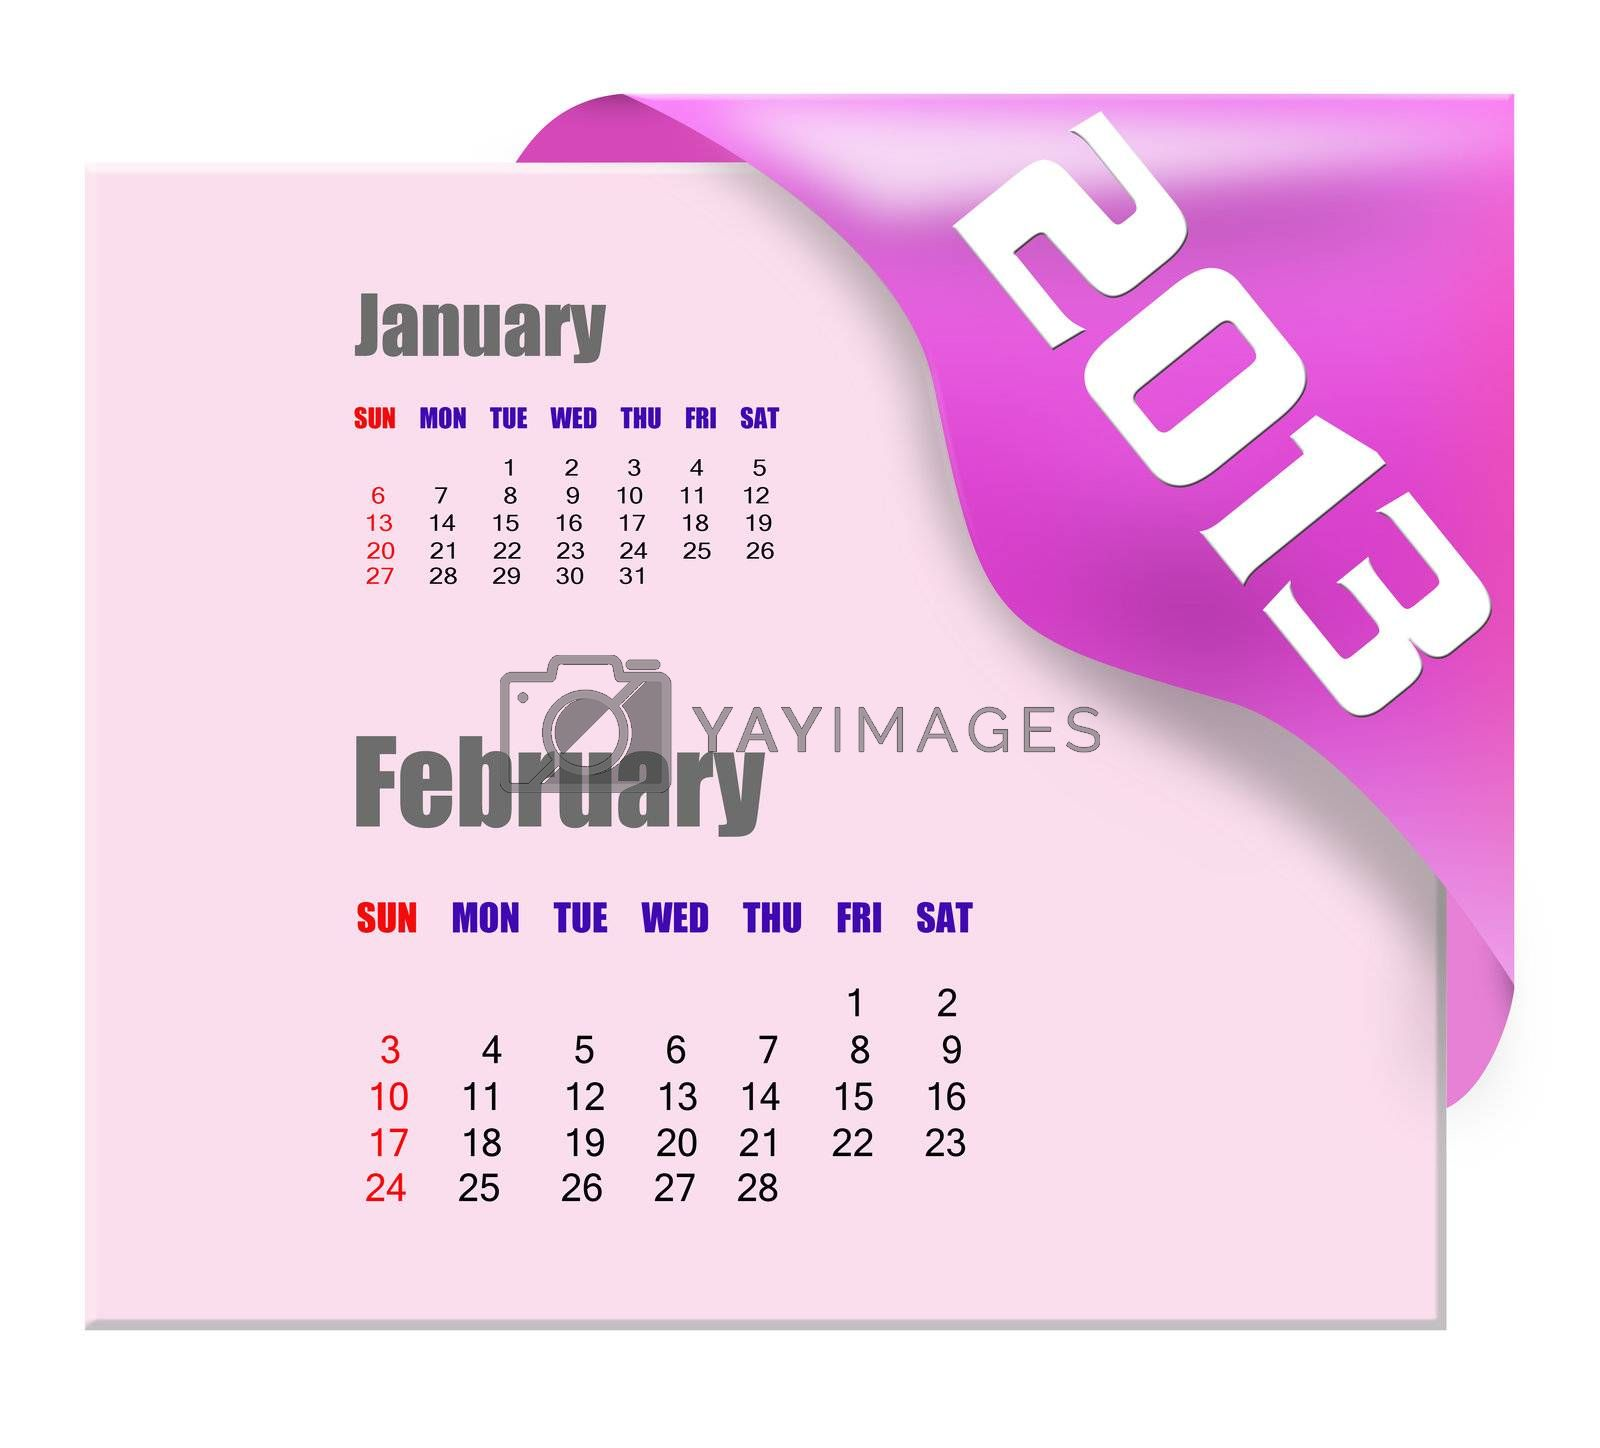 2013 February calendar  by payphoto